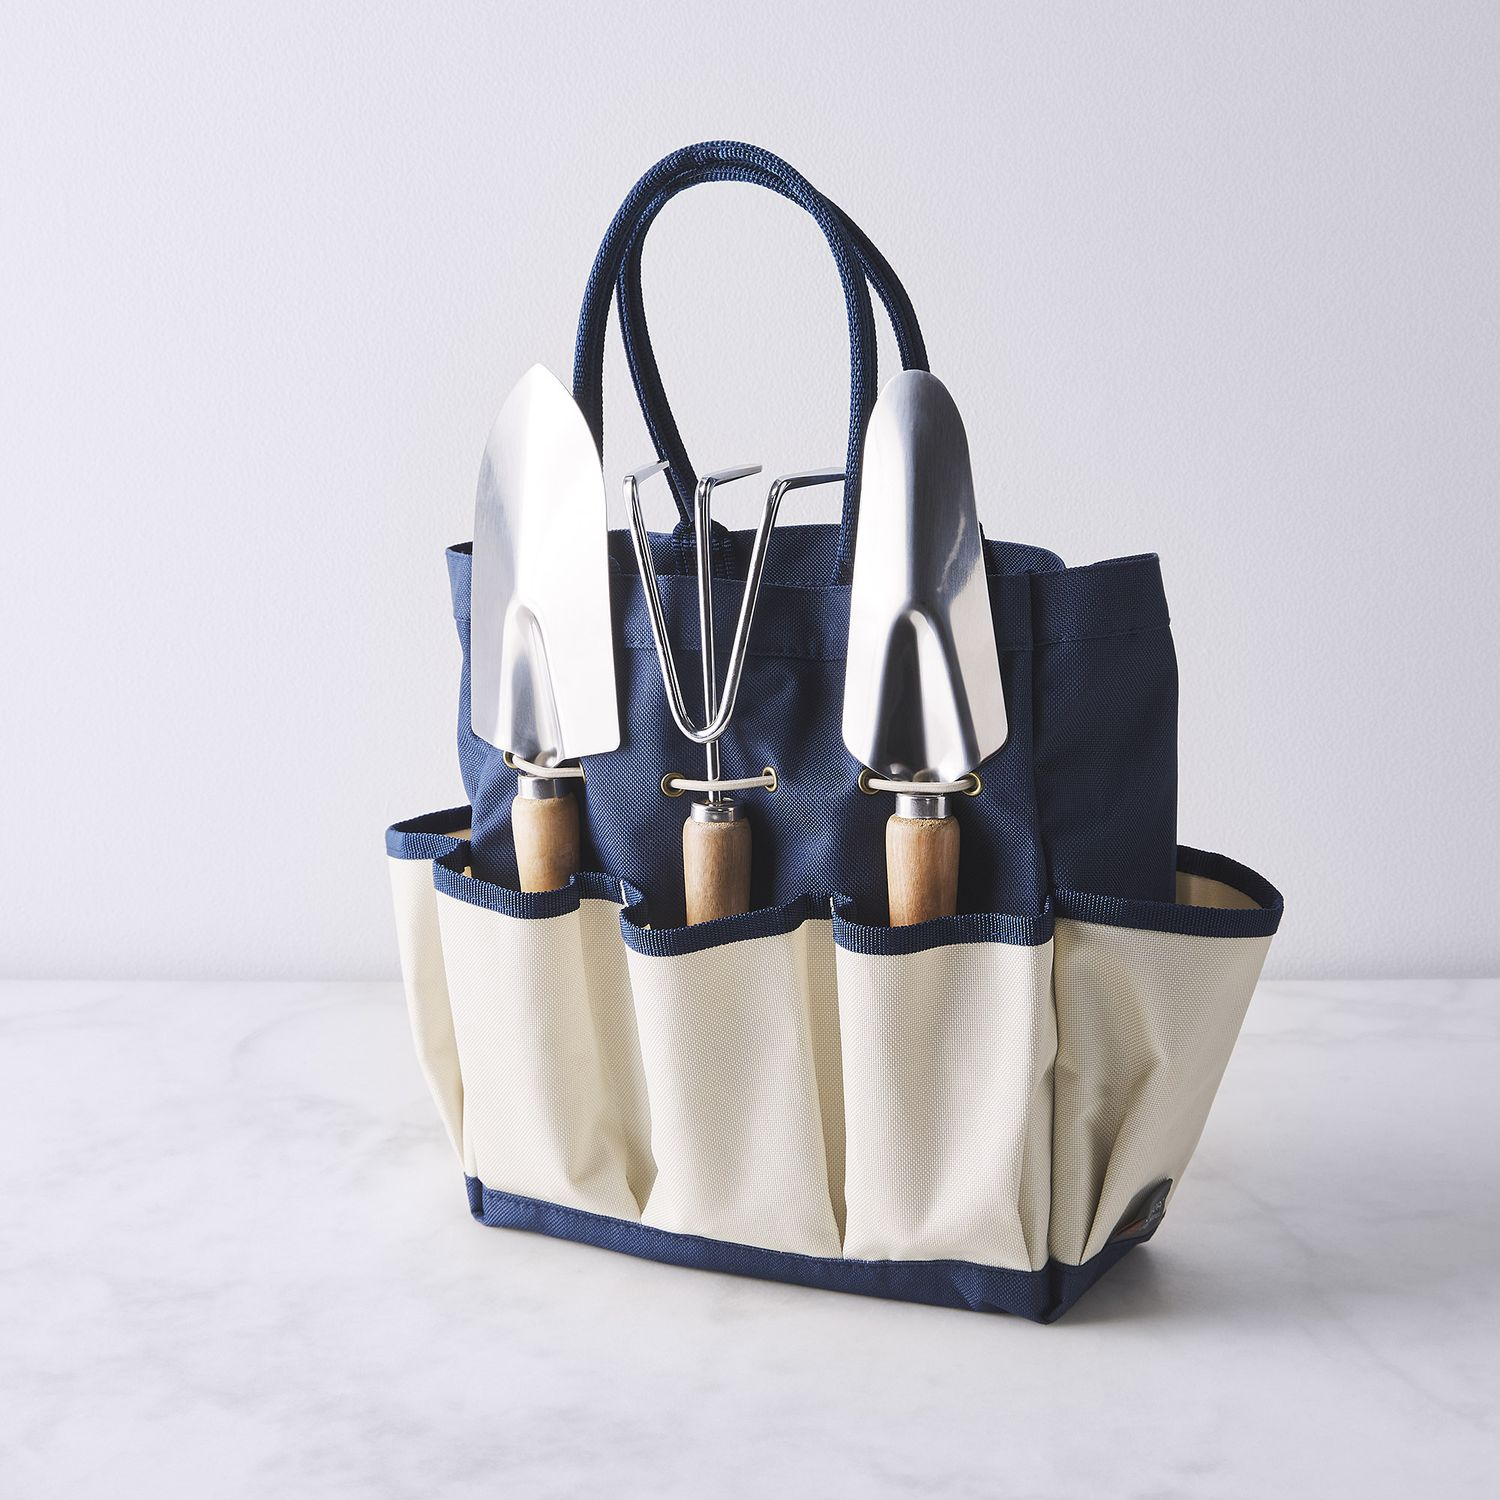 Essential Garden Tote and Tools